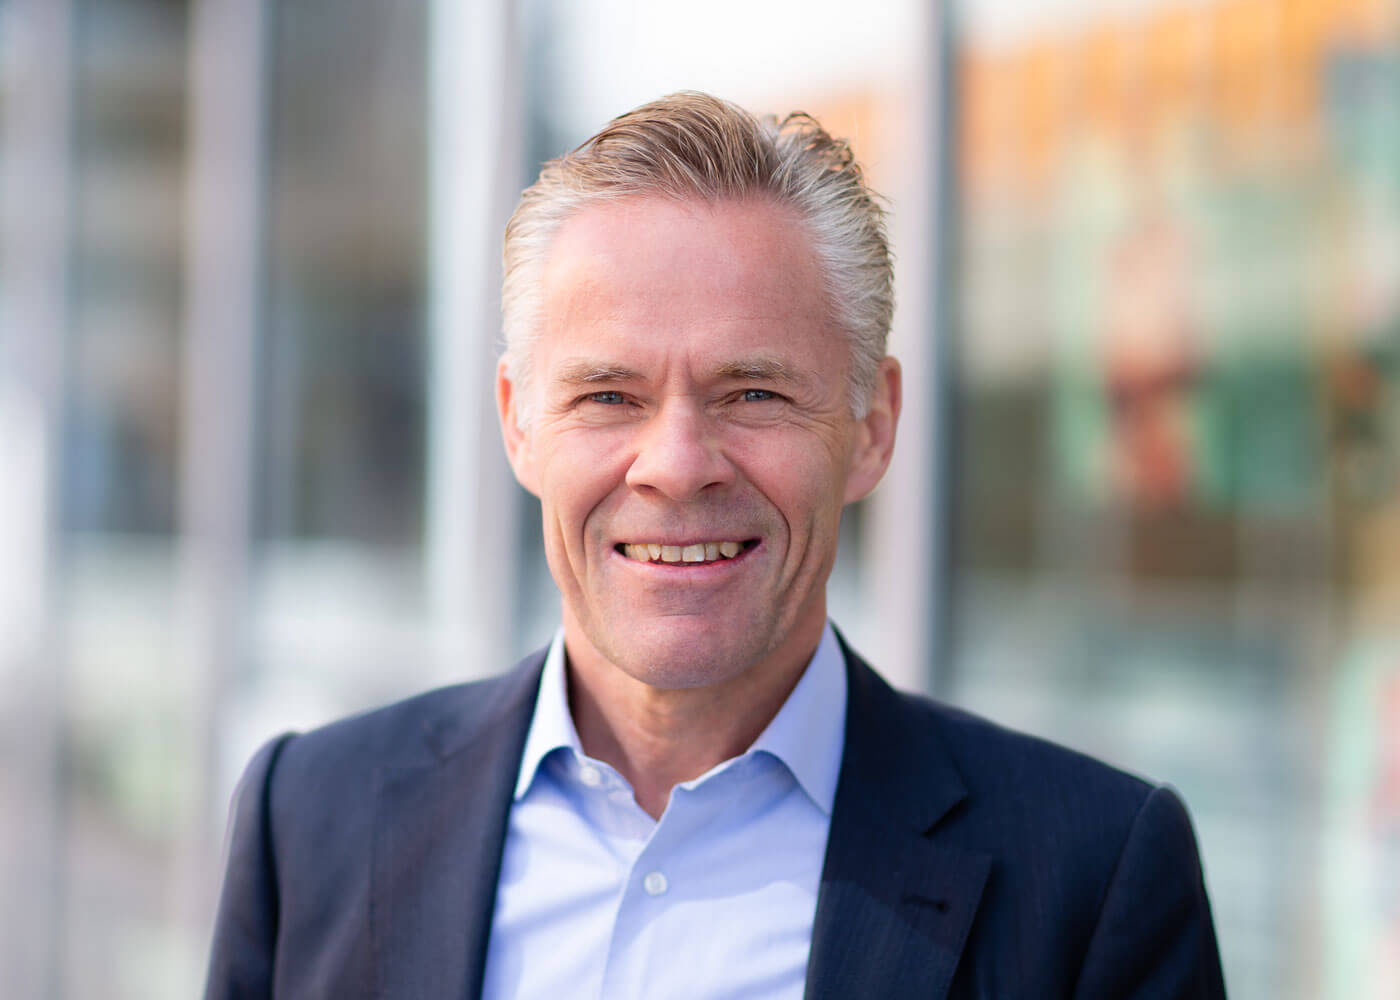 Hans-Petter Mellerud, CEO and Founder